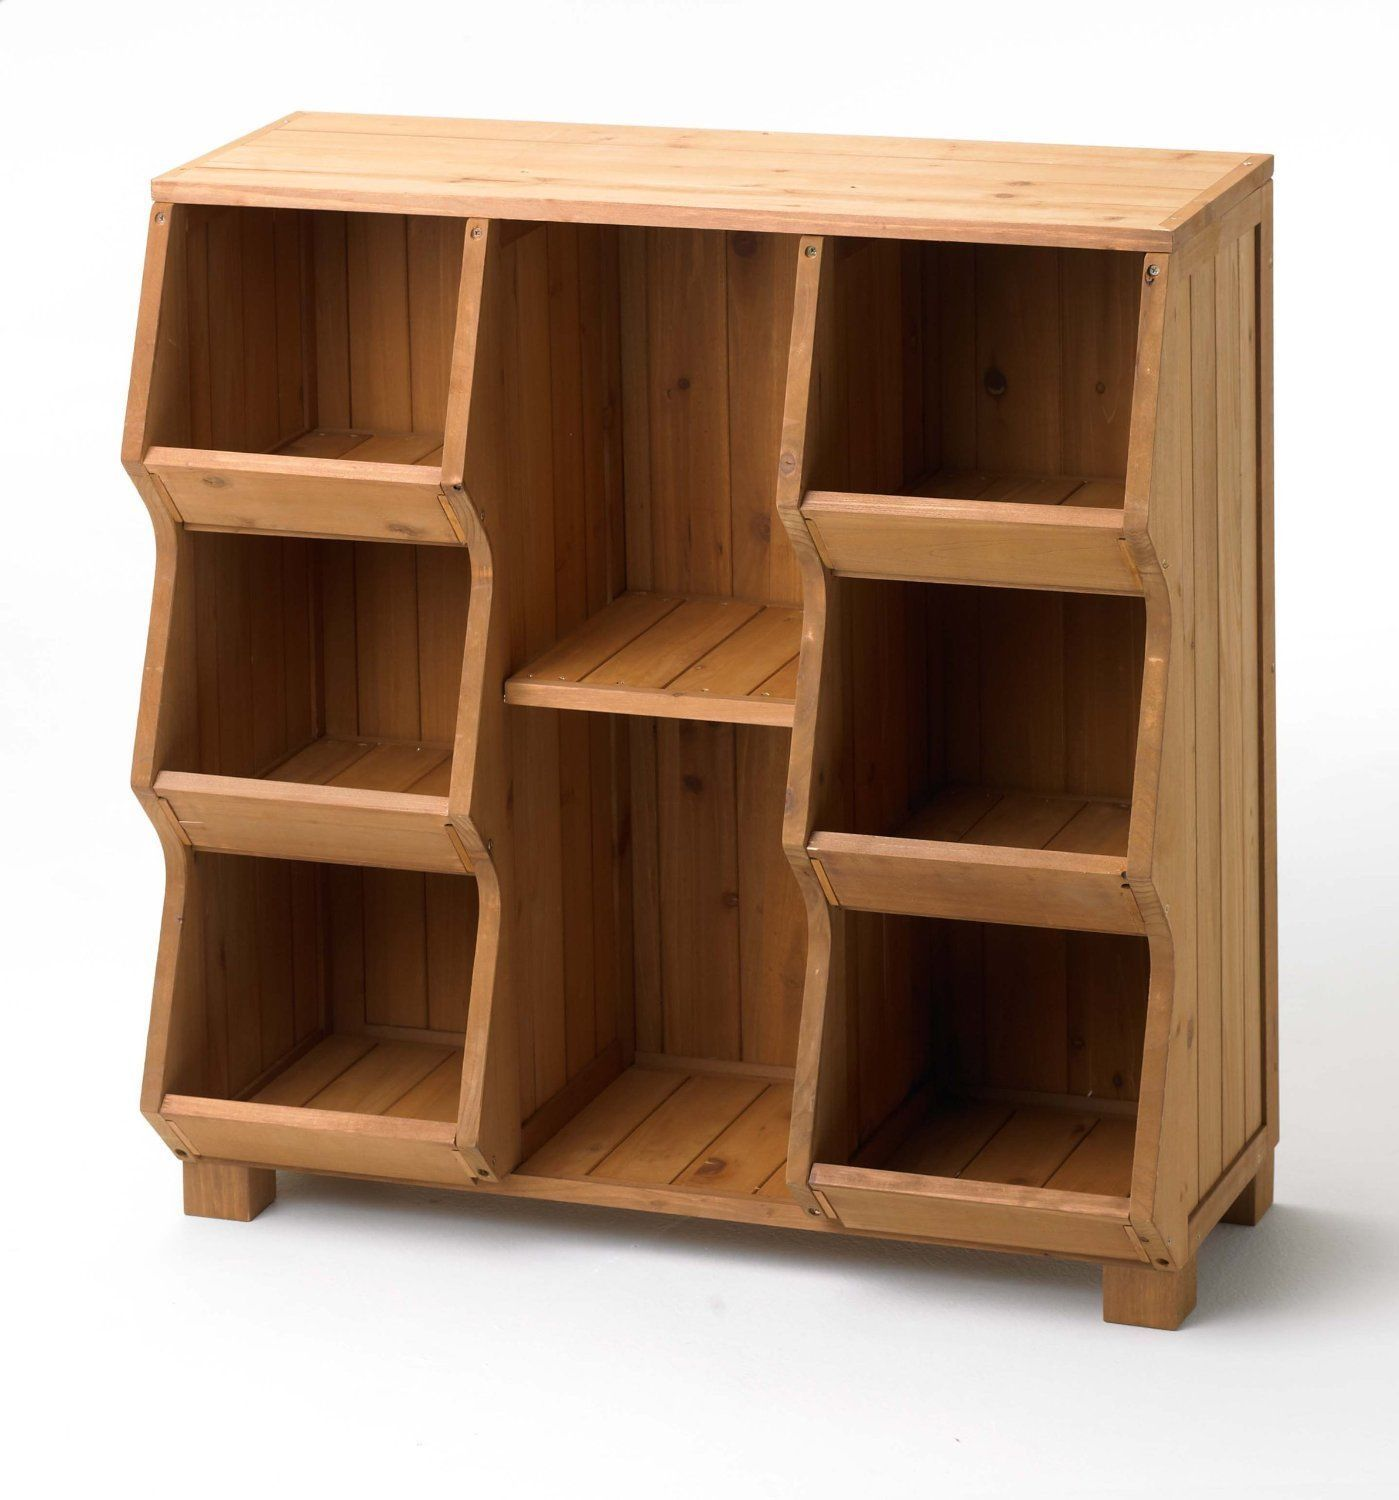 wood storage cabinet single tall stackable home shelf toy. Black Bedroom Furniture Sets. Home Design Ideas